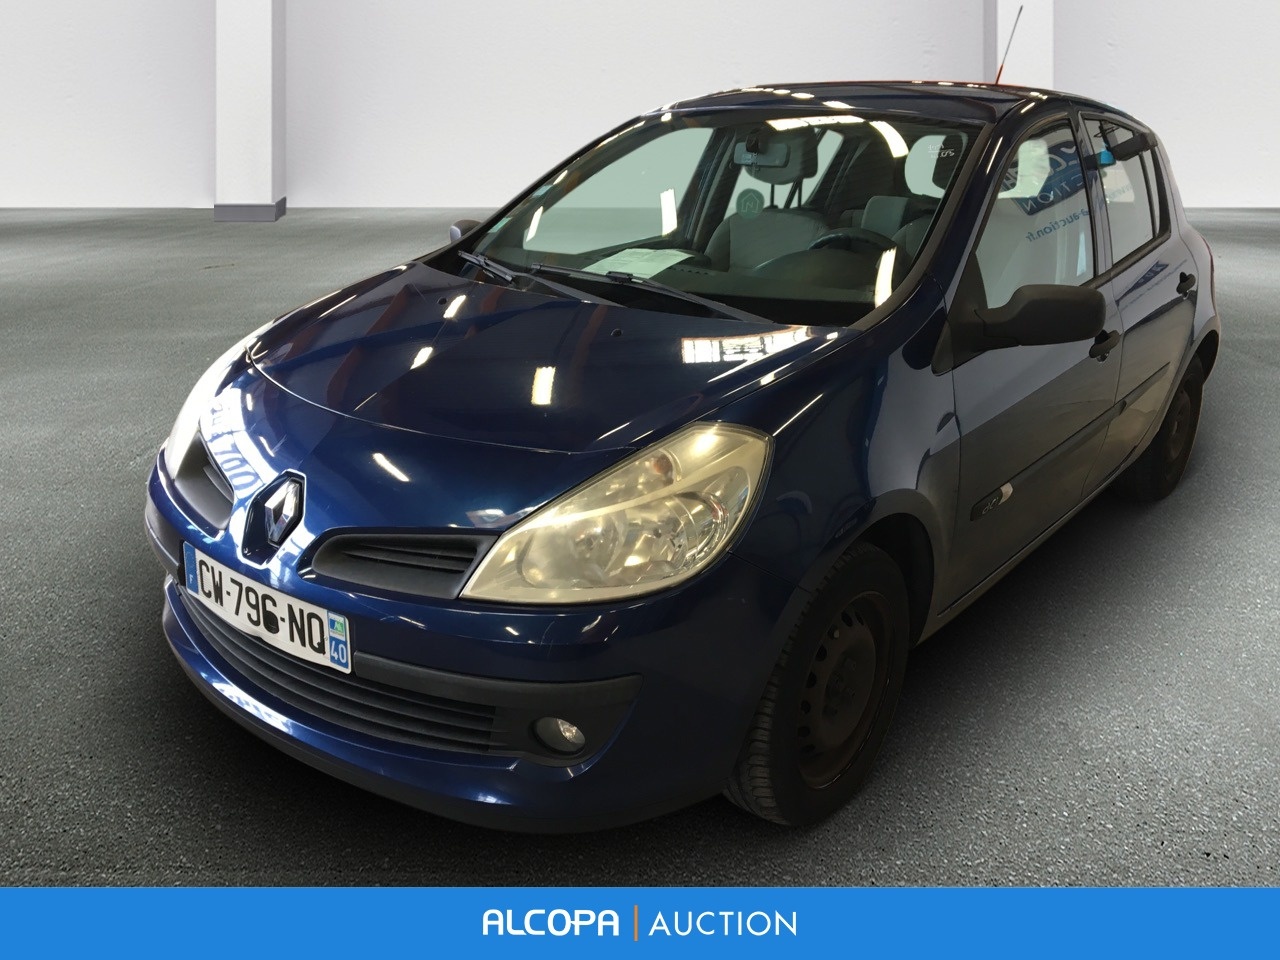 renault clio iii clio 1 5 dci 70 confort expression alcopa auction. Black Bedroom Furniture Sets. Home Design Ideas